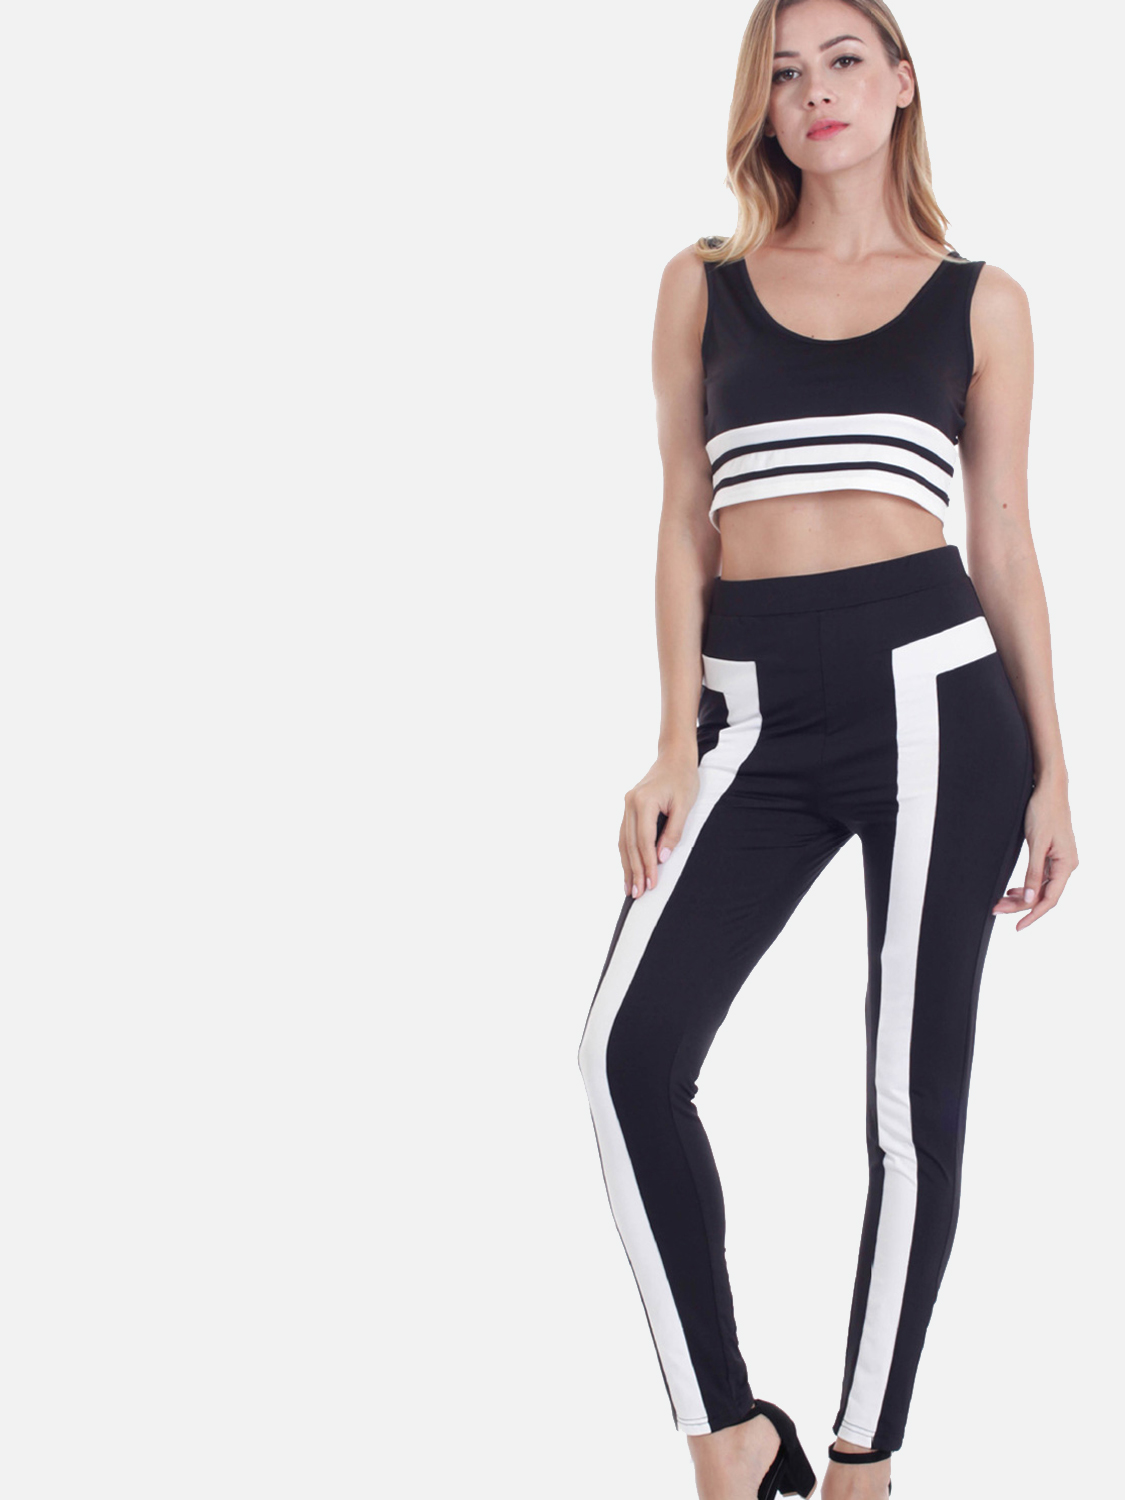 5a86308b27 US$ 28 - OneBling Two Tone Crop Tank Tops and Pants Sets - www.onebling.com